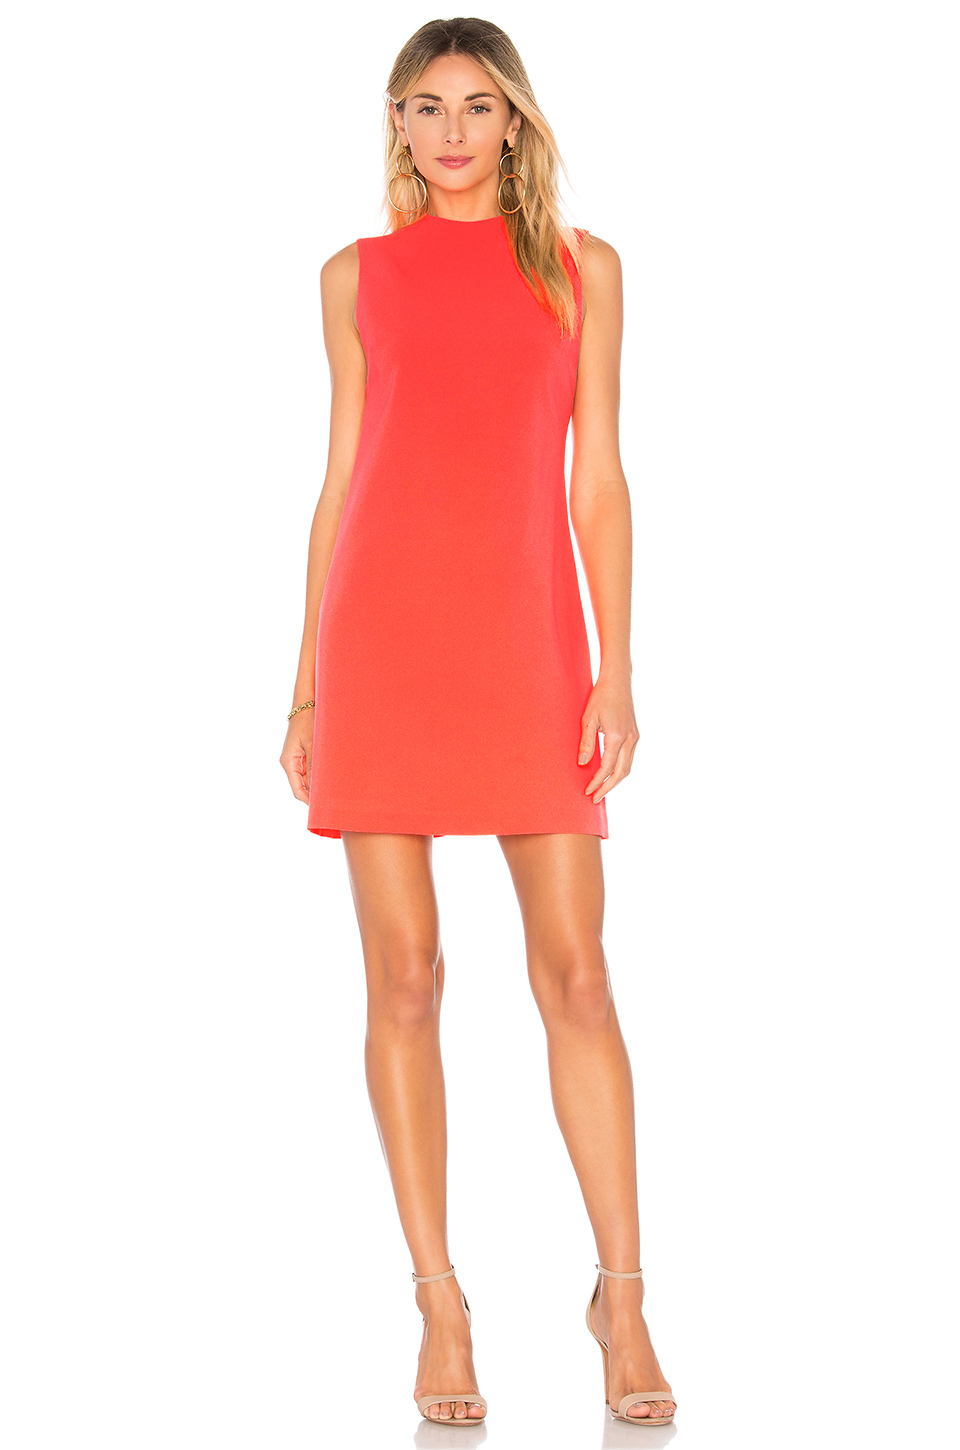 Alice + Olivia Coley Aline Dress in Neon Coral